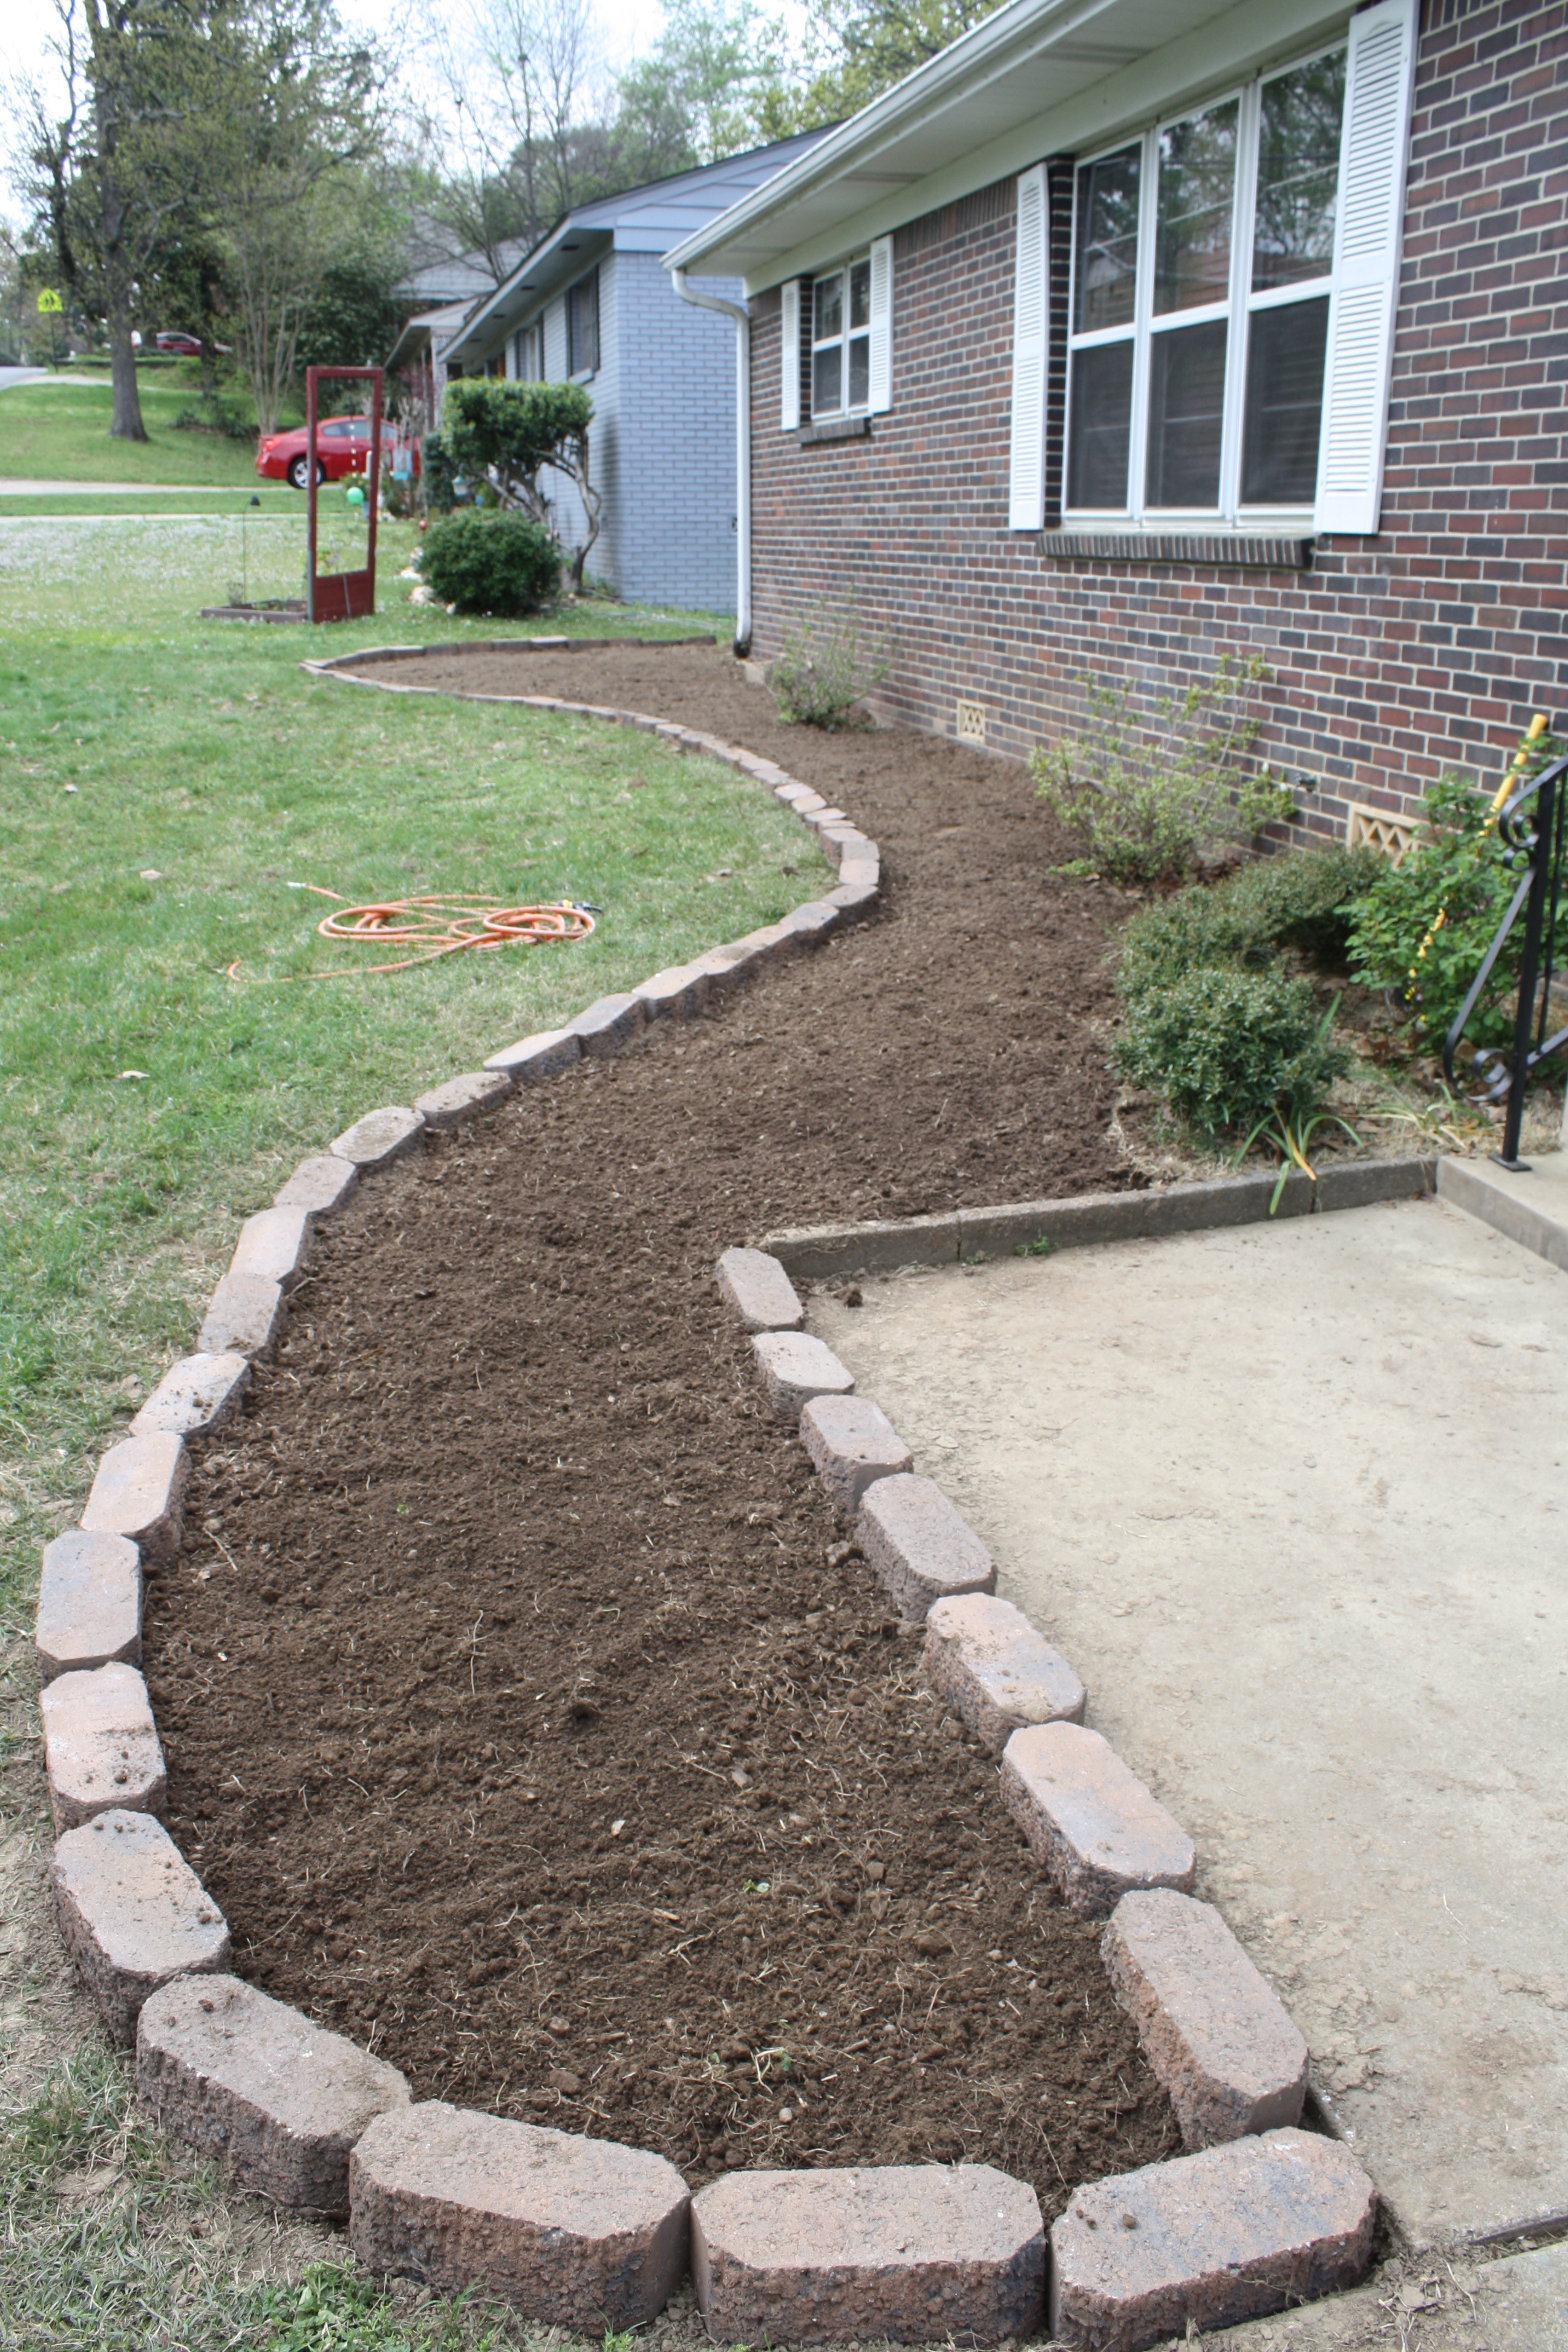 Manscaping phase 1 a guest post from aaron rosemary for Front yard flower bed designs